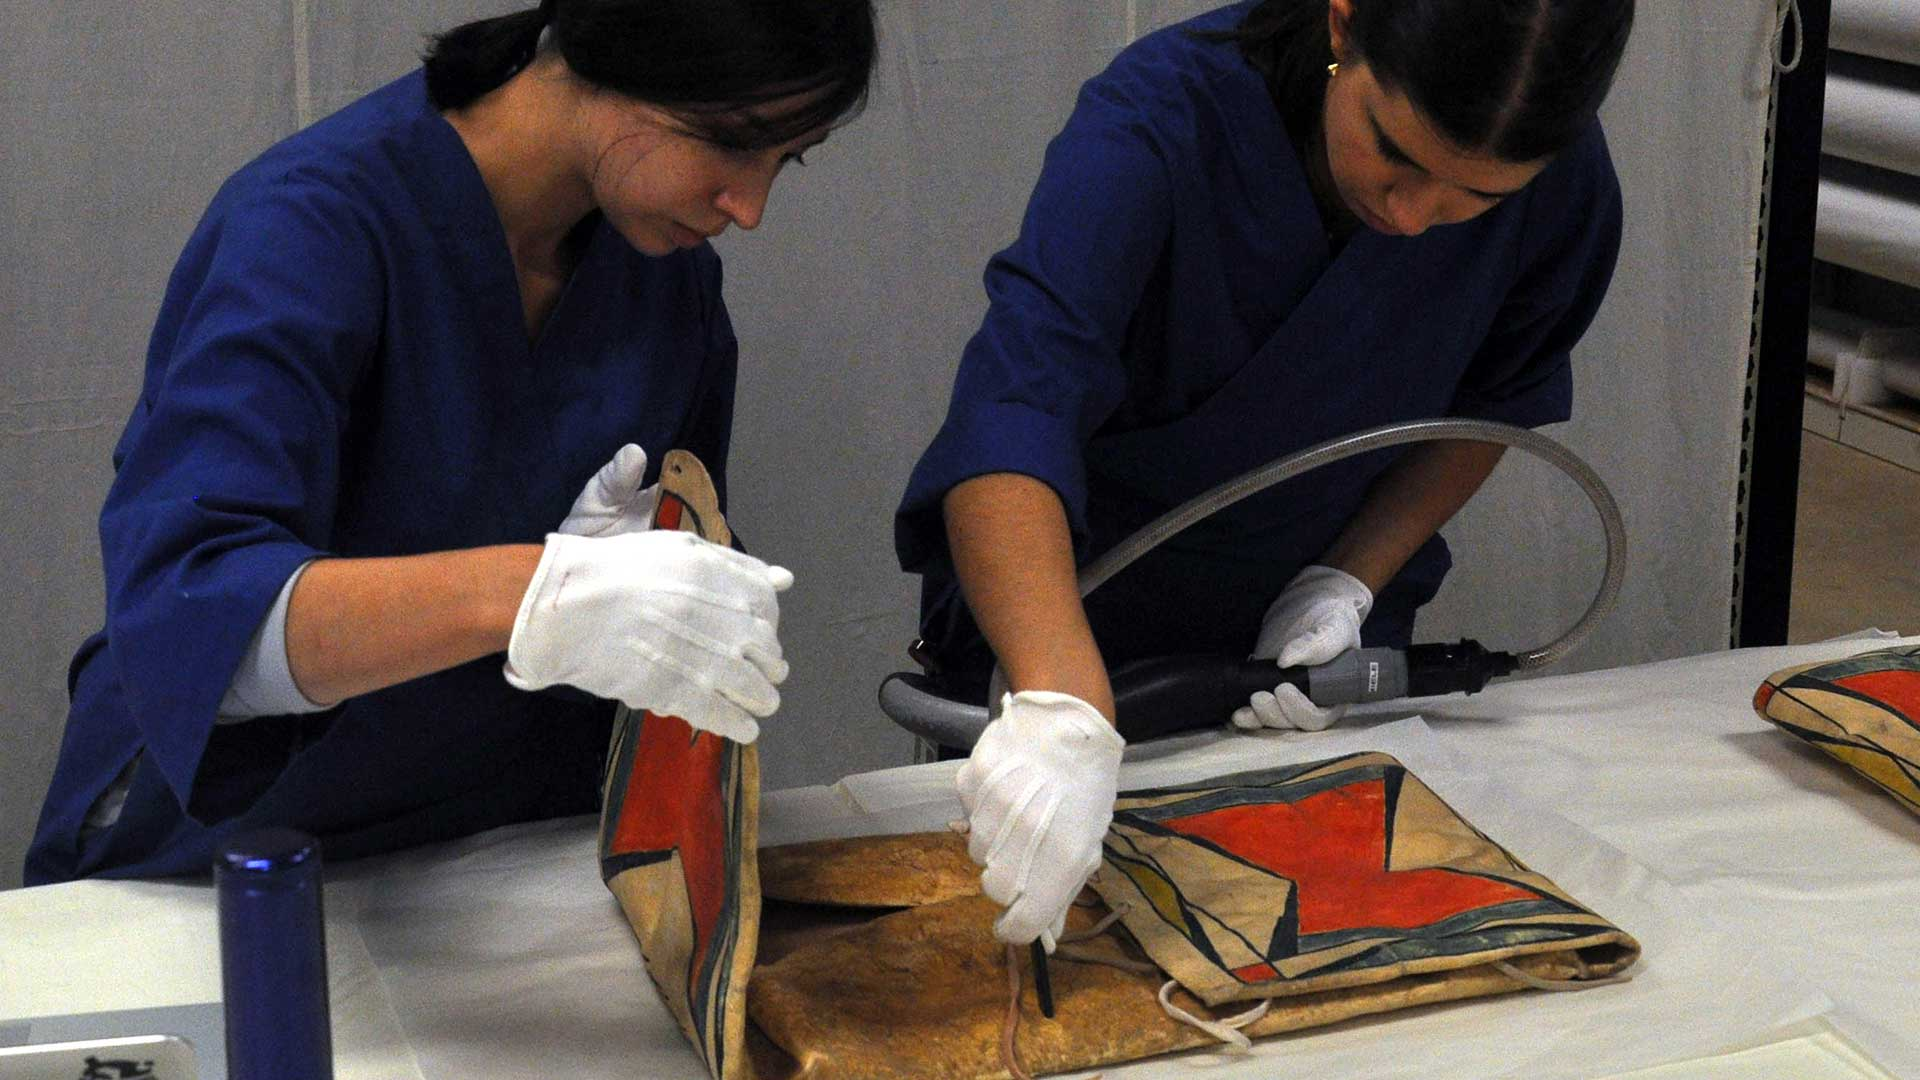 Two collections students vacuum a parfleche bag